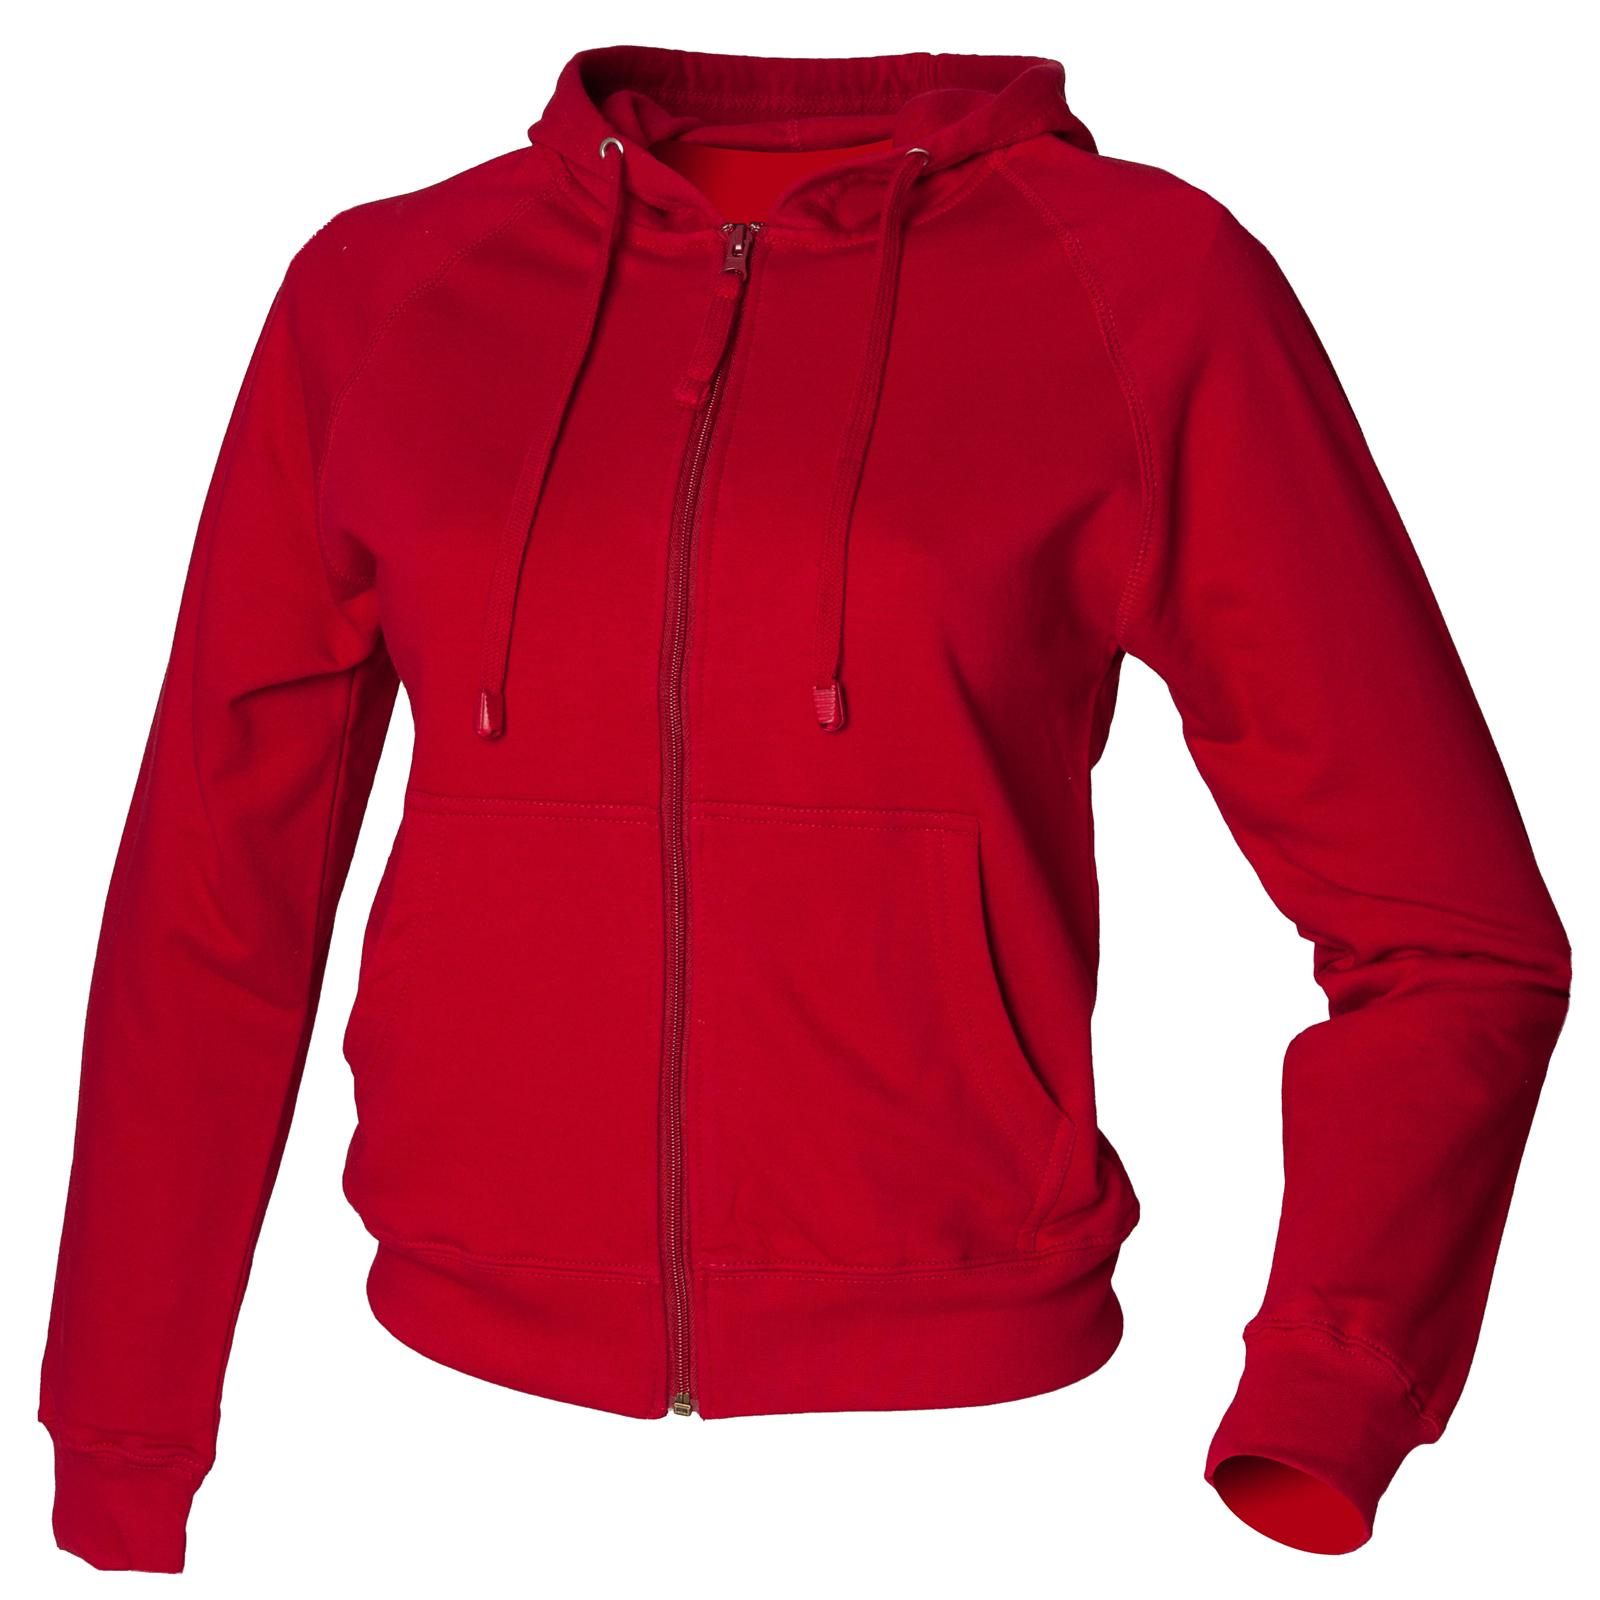 New SKINNI FIT Womens Ladies Cotton Zip Up Hoodie Jacket in 7 Colours S - XL